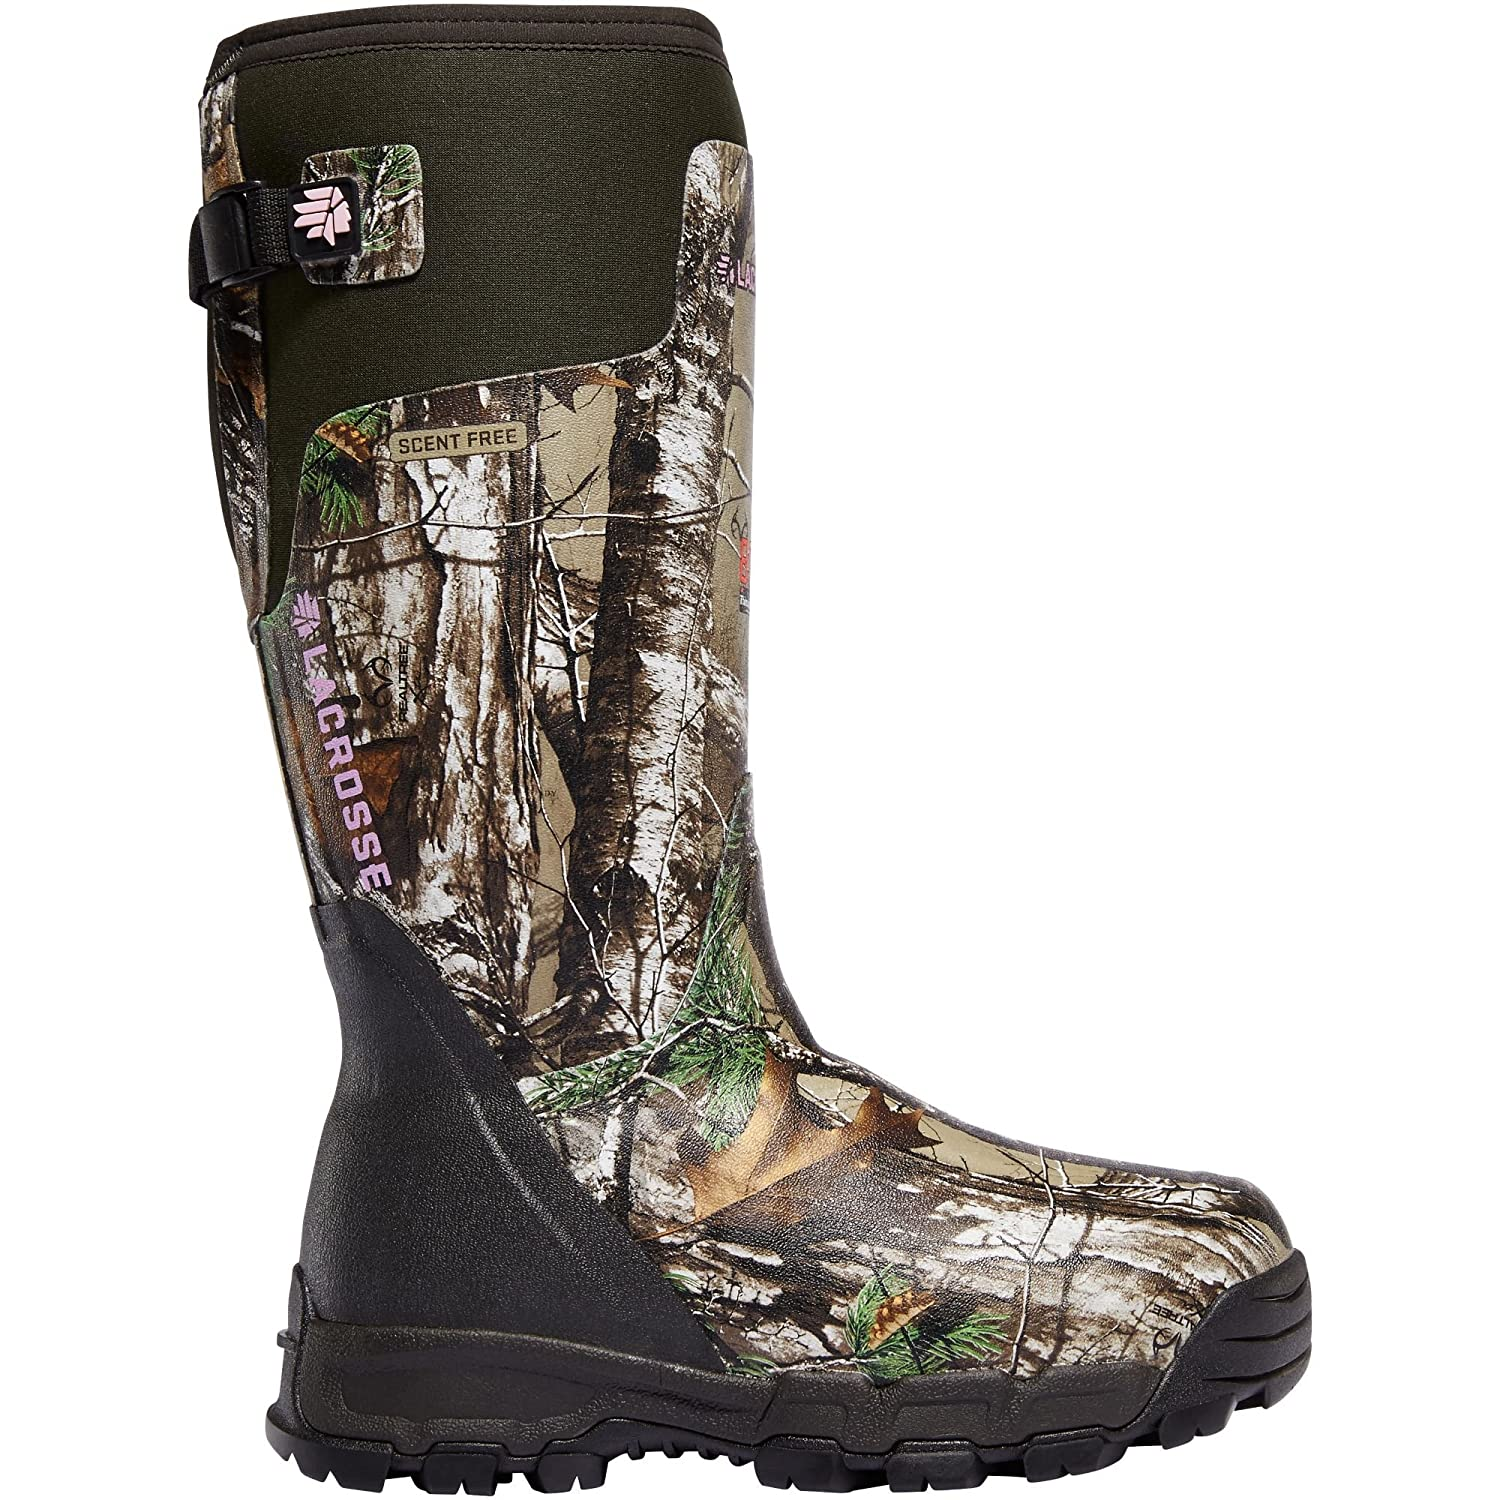 Lacrosse Women's Alphaburly Pro 15 Height Realtree Xtra 800G (376025) | Waterproof | Insulated Modern Comfortable Hunting Combat Boot Best for Mud, Snow Snow (8)